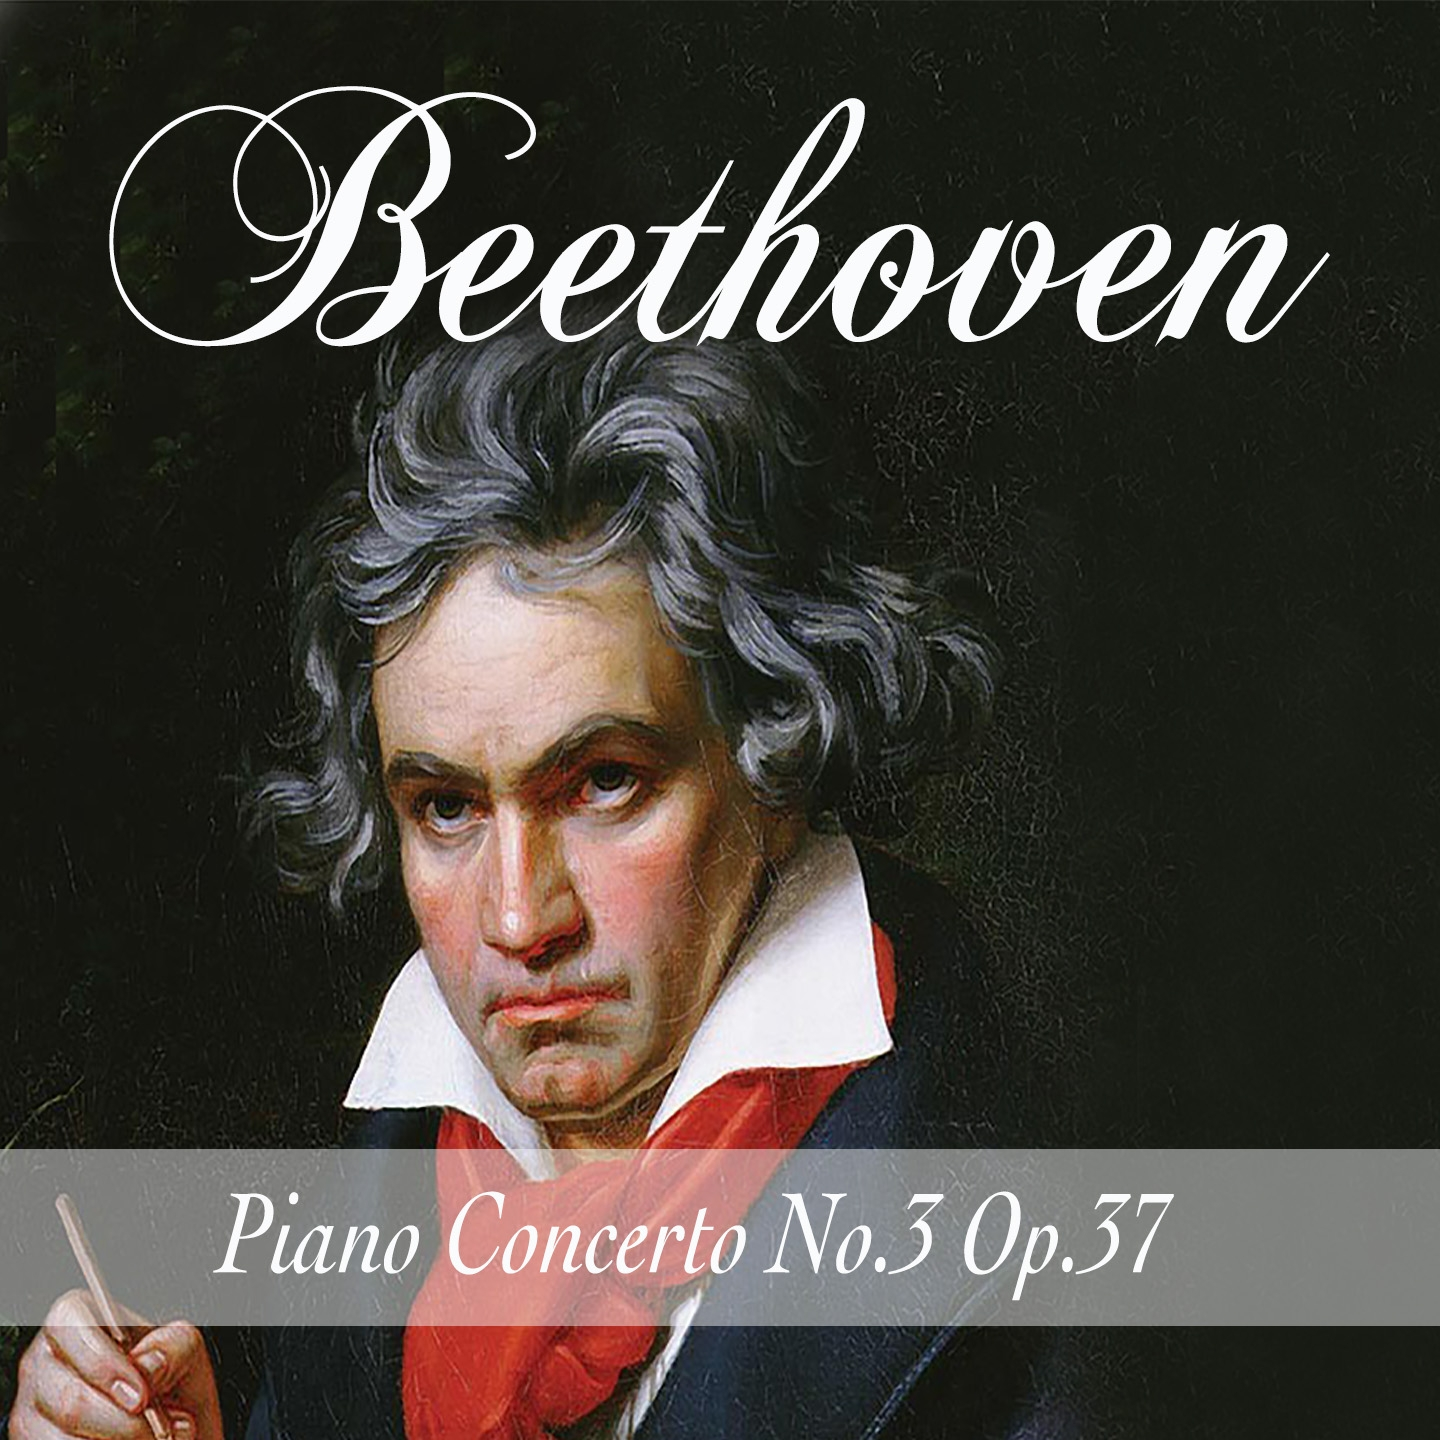 Beethoven: Piano Concerto No. 3, Op. 37